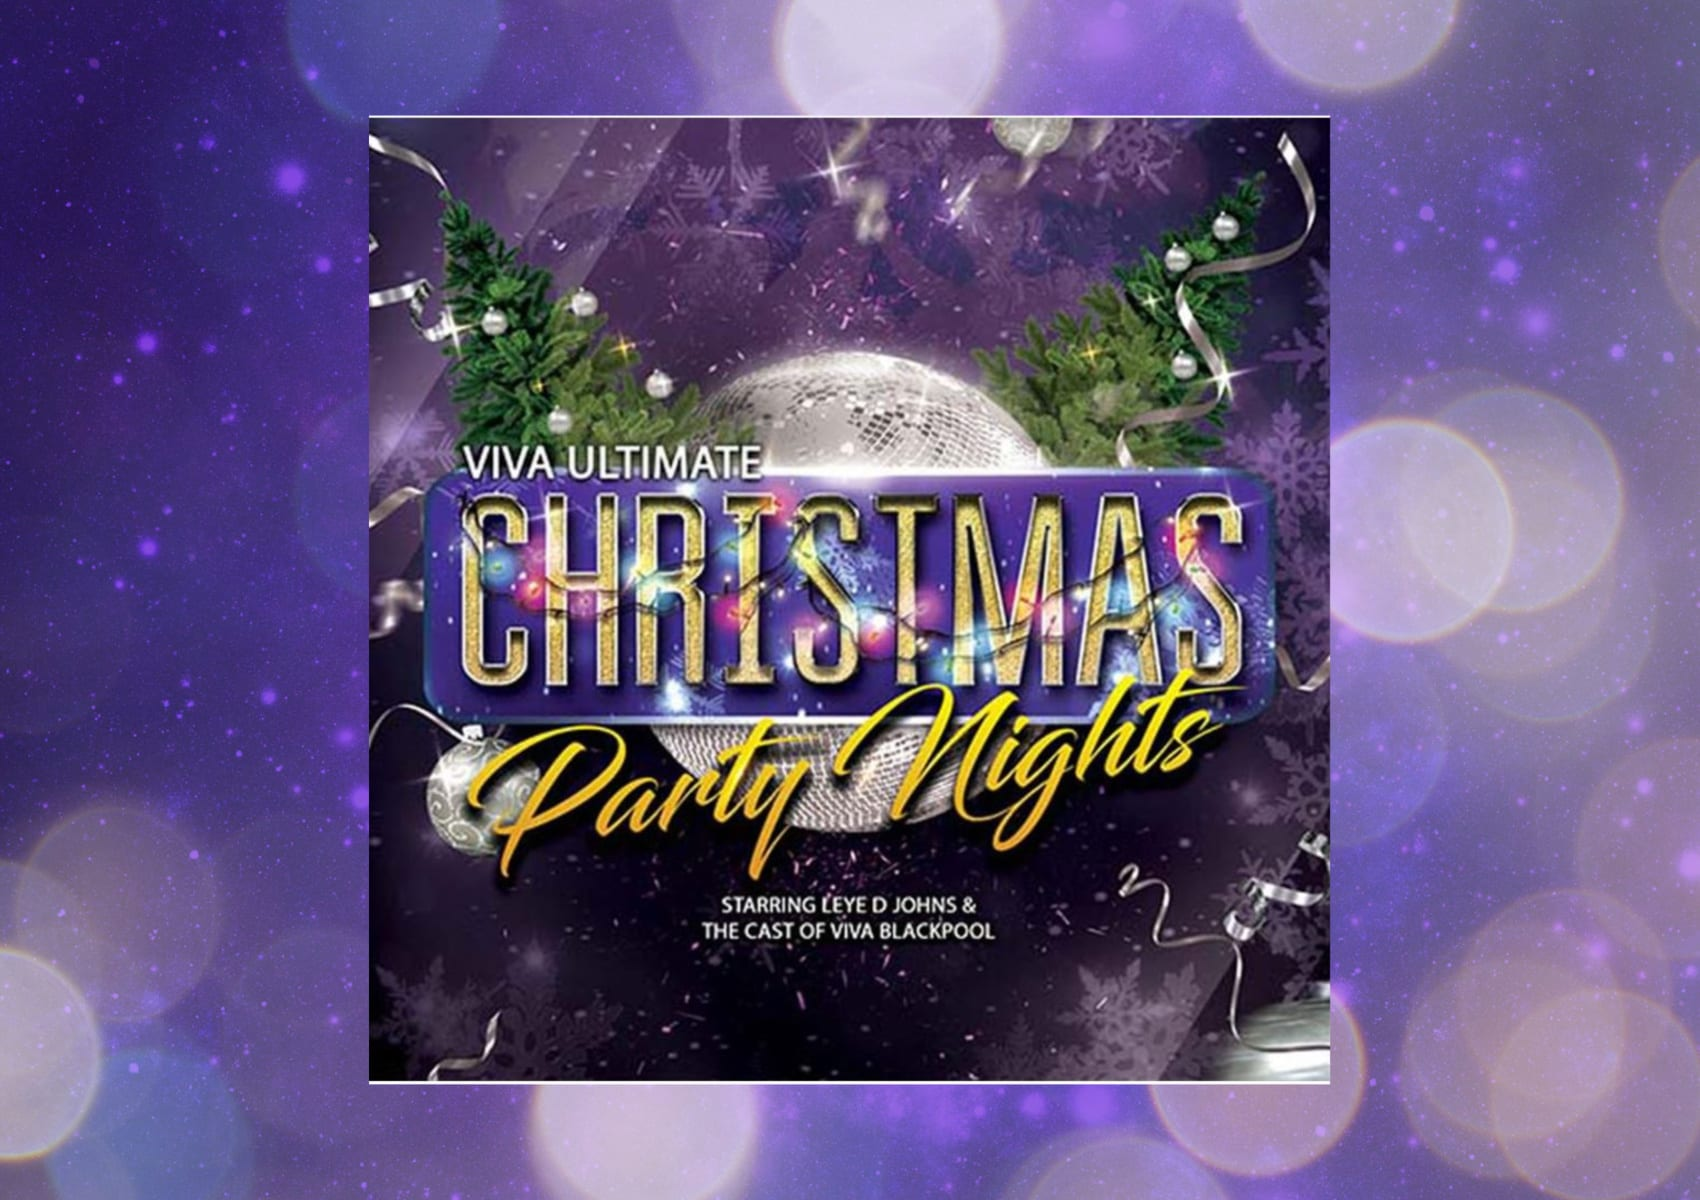 Christmas Graphics 2019.Viva Ultimate Christmas Party Nights 2019 With 15 Off